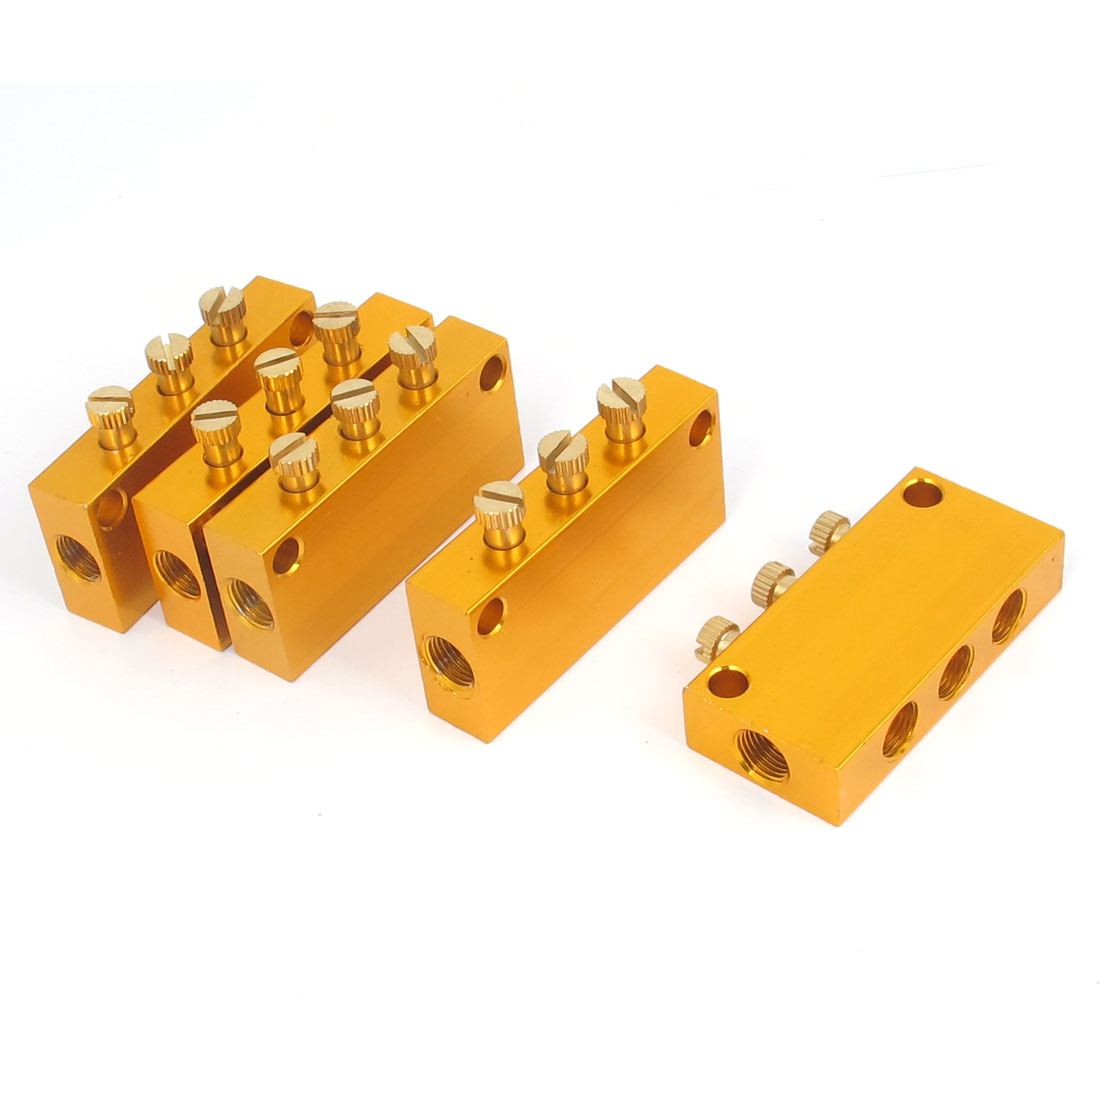 Aluminum Air Pneumatic Adjustable 3 Ways Oil Distributor Manifold Block 5pcs